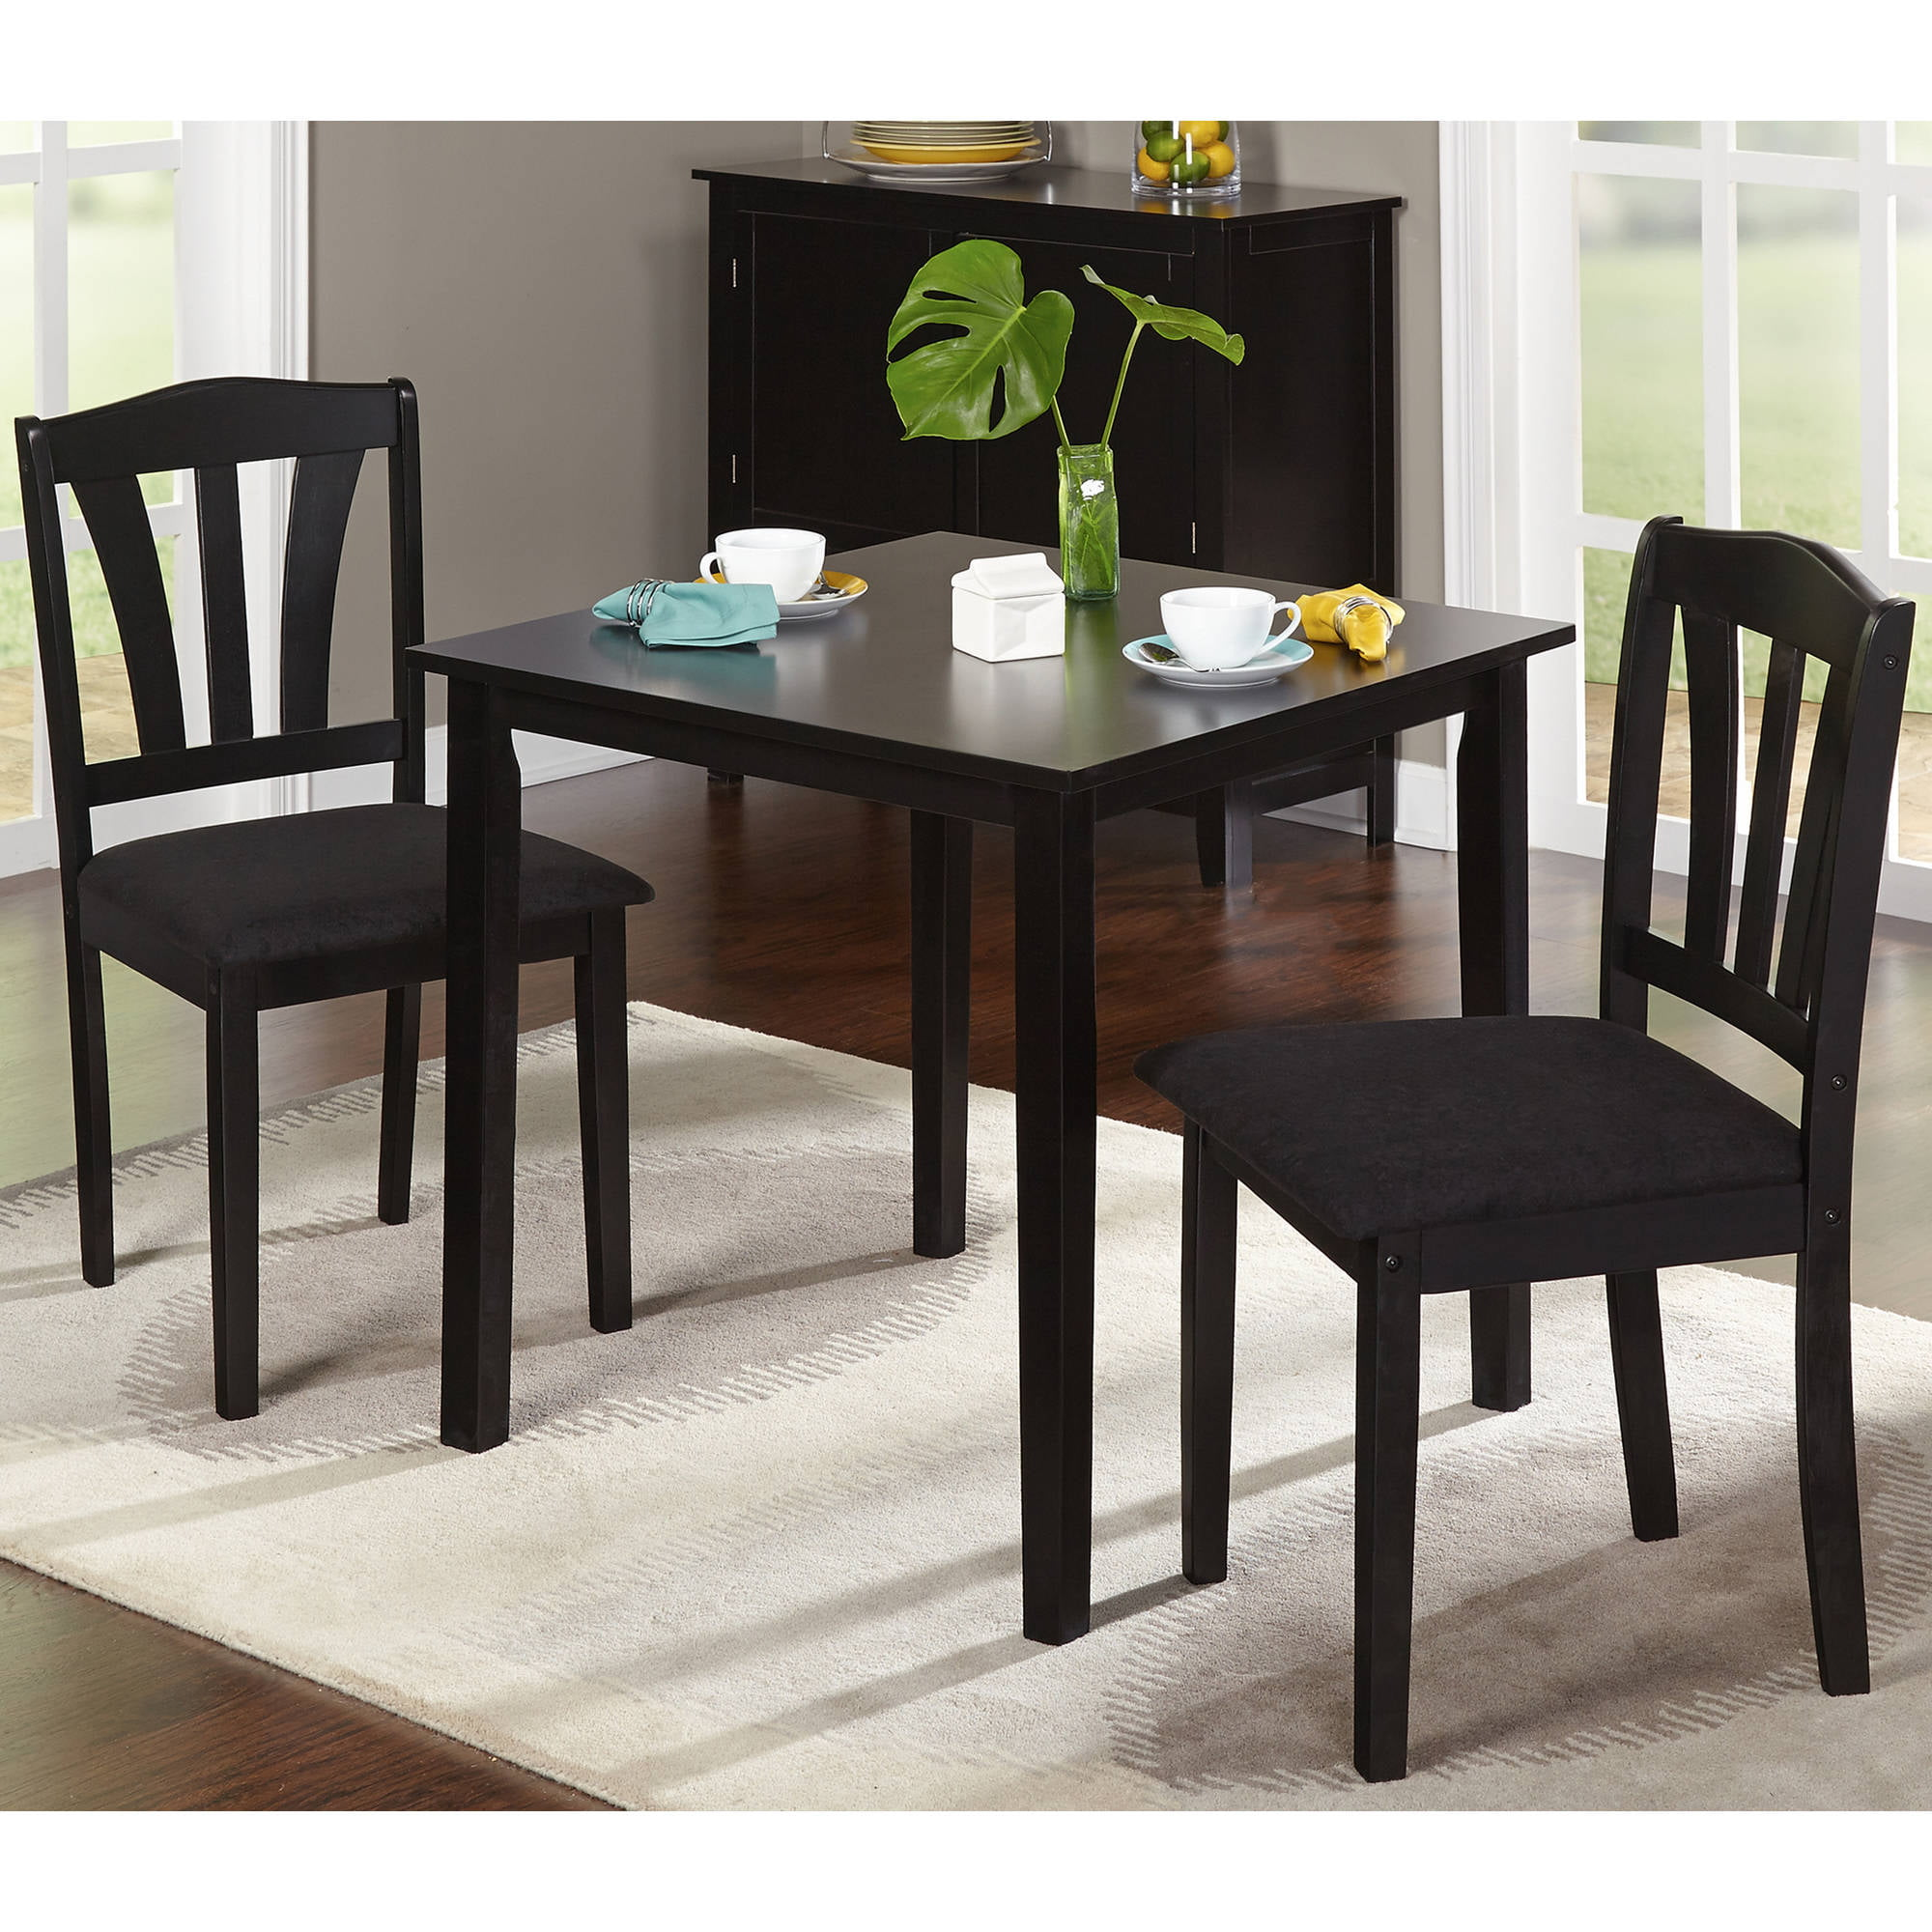 walmart dining room sets Weston Home Scottsdale 3 piece breakfast set, multiple colors  walmart dining room sets